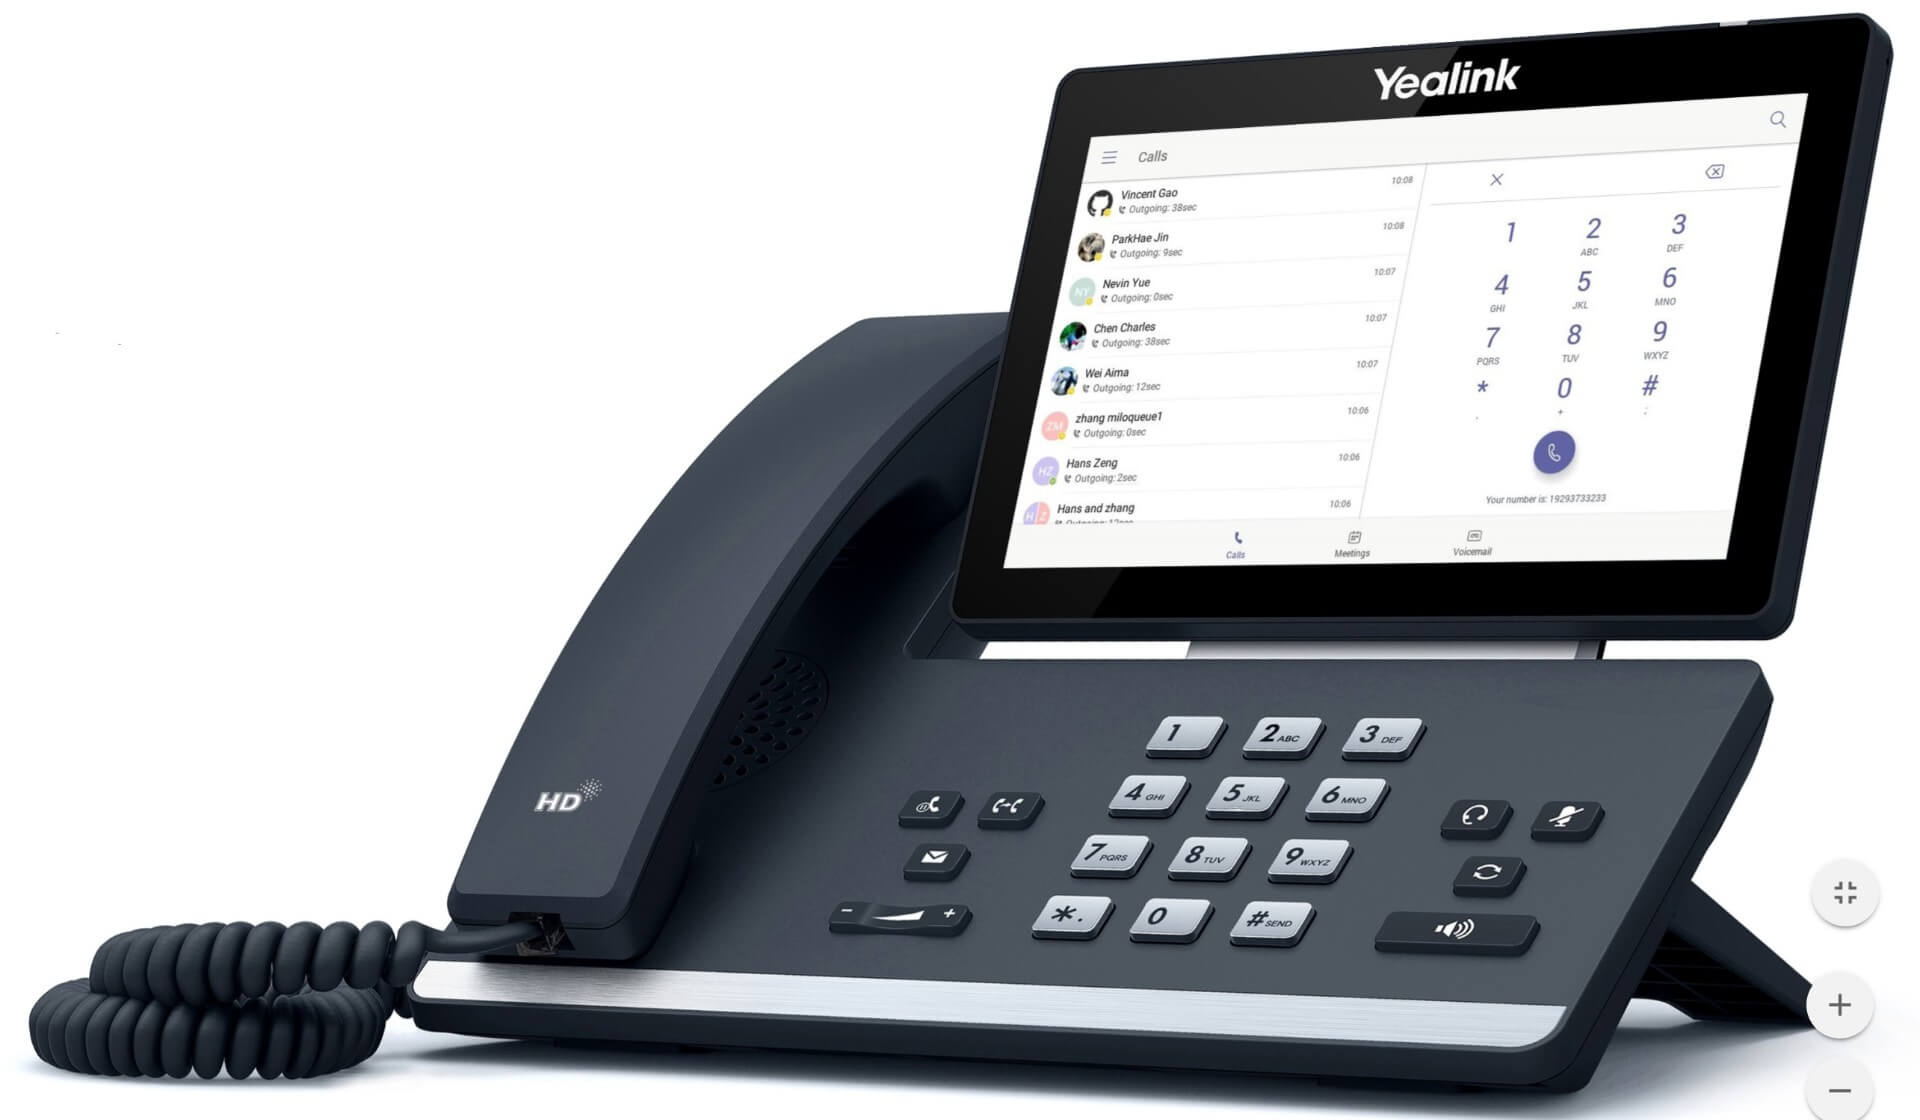 Yealink T58A Business IP Phone Image